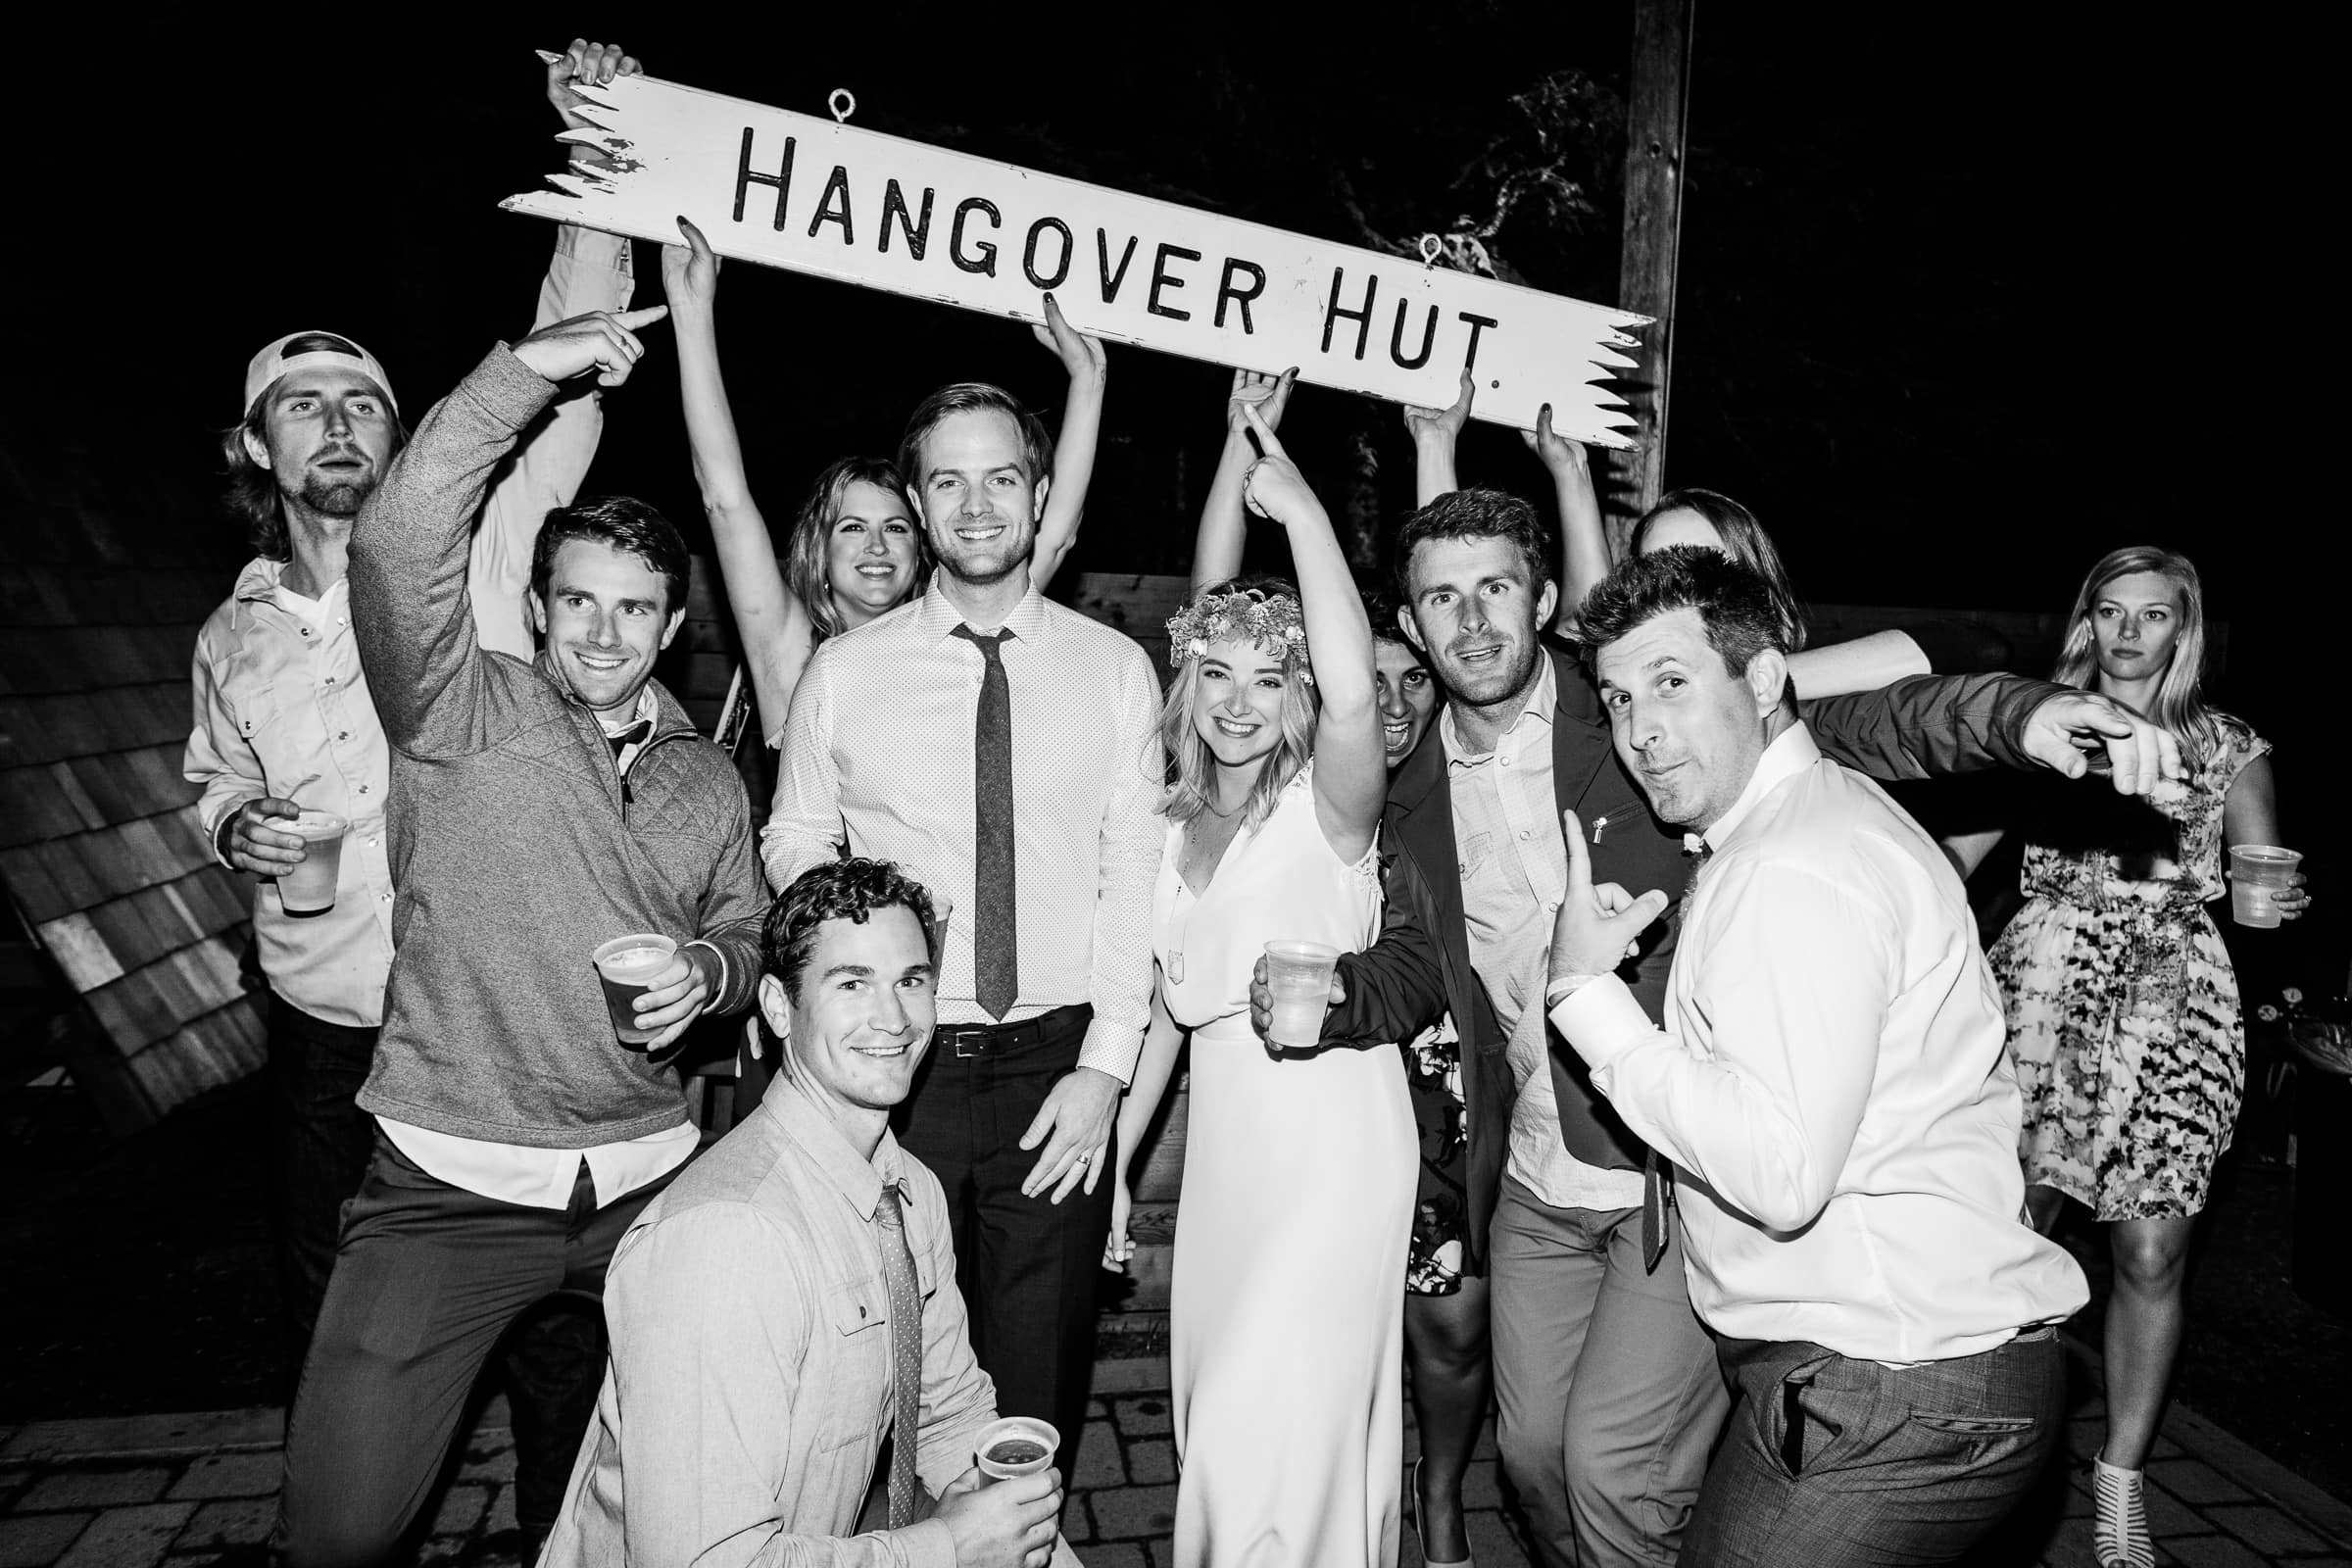 group holding hangover hut sign